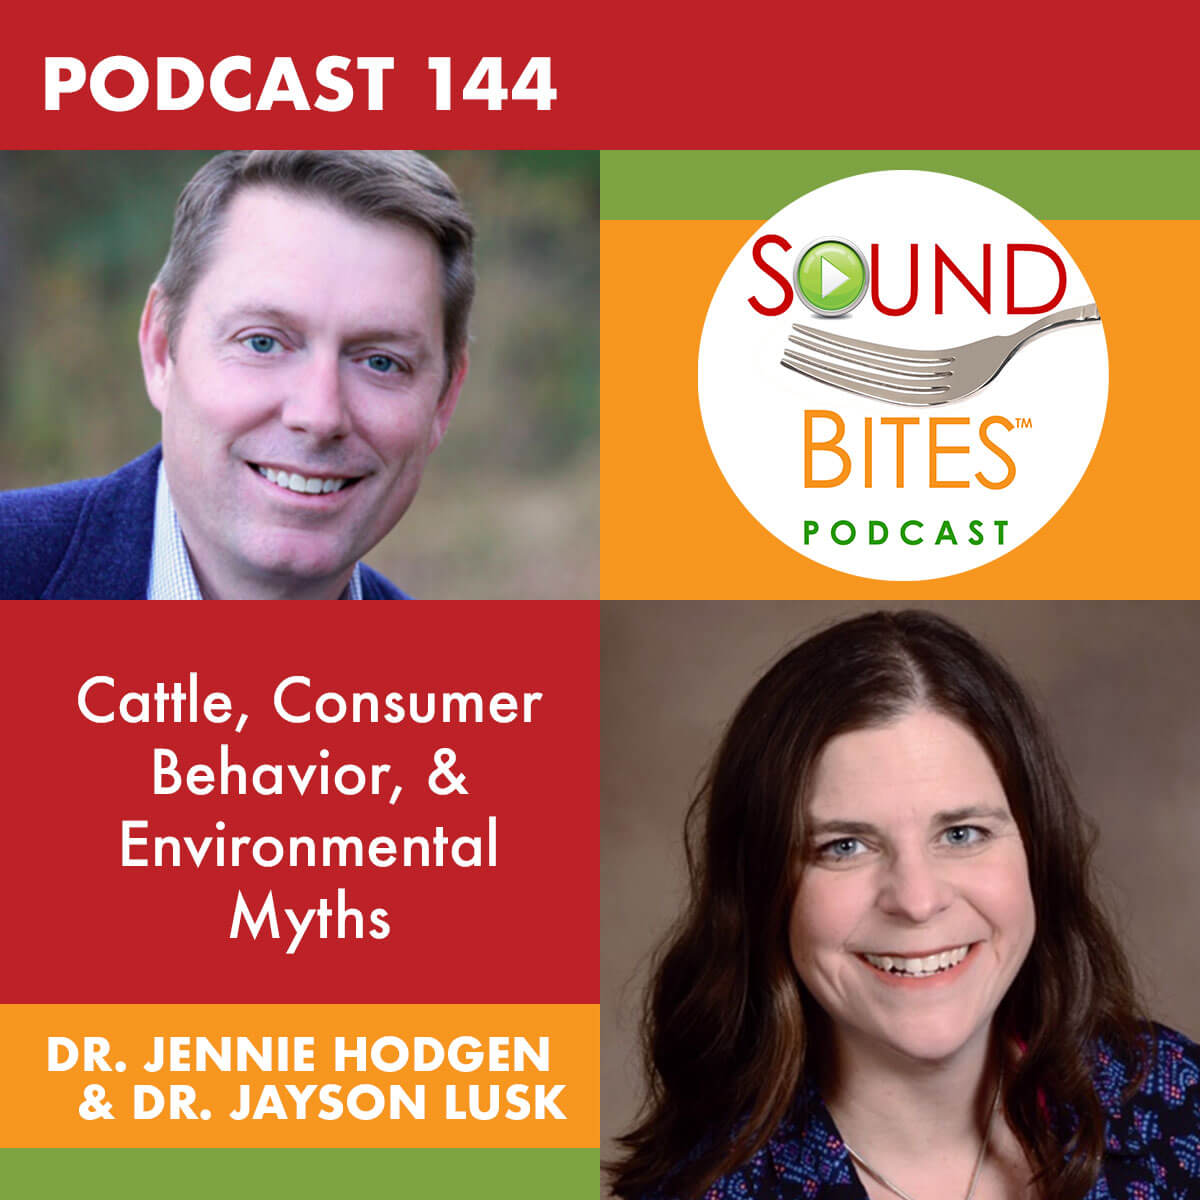 Episode 144 Jennie Hodgen and Jason Lusk